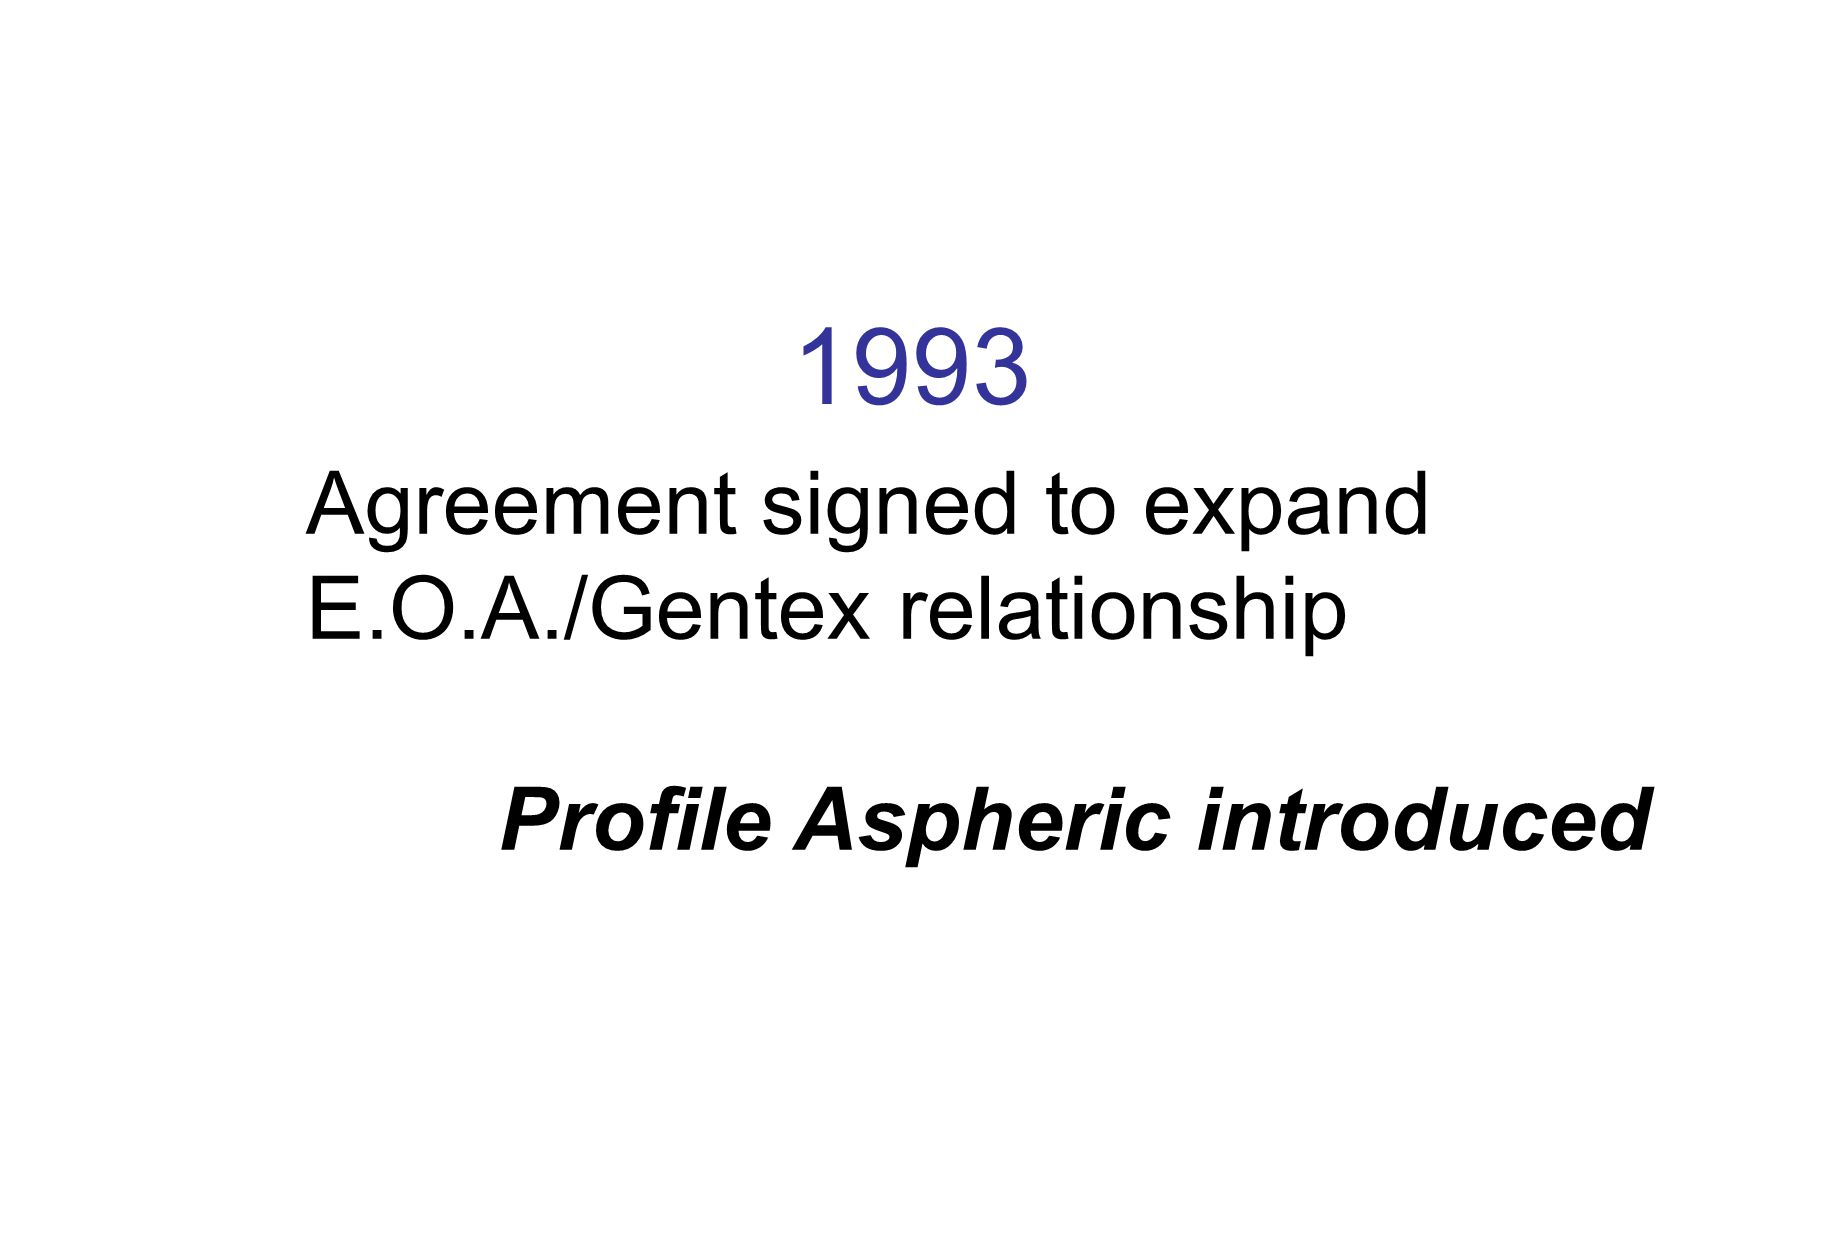 1993 Agreement signed to expand E.O.A./Gentex relationship Profile Aspheric introduced